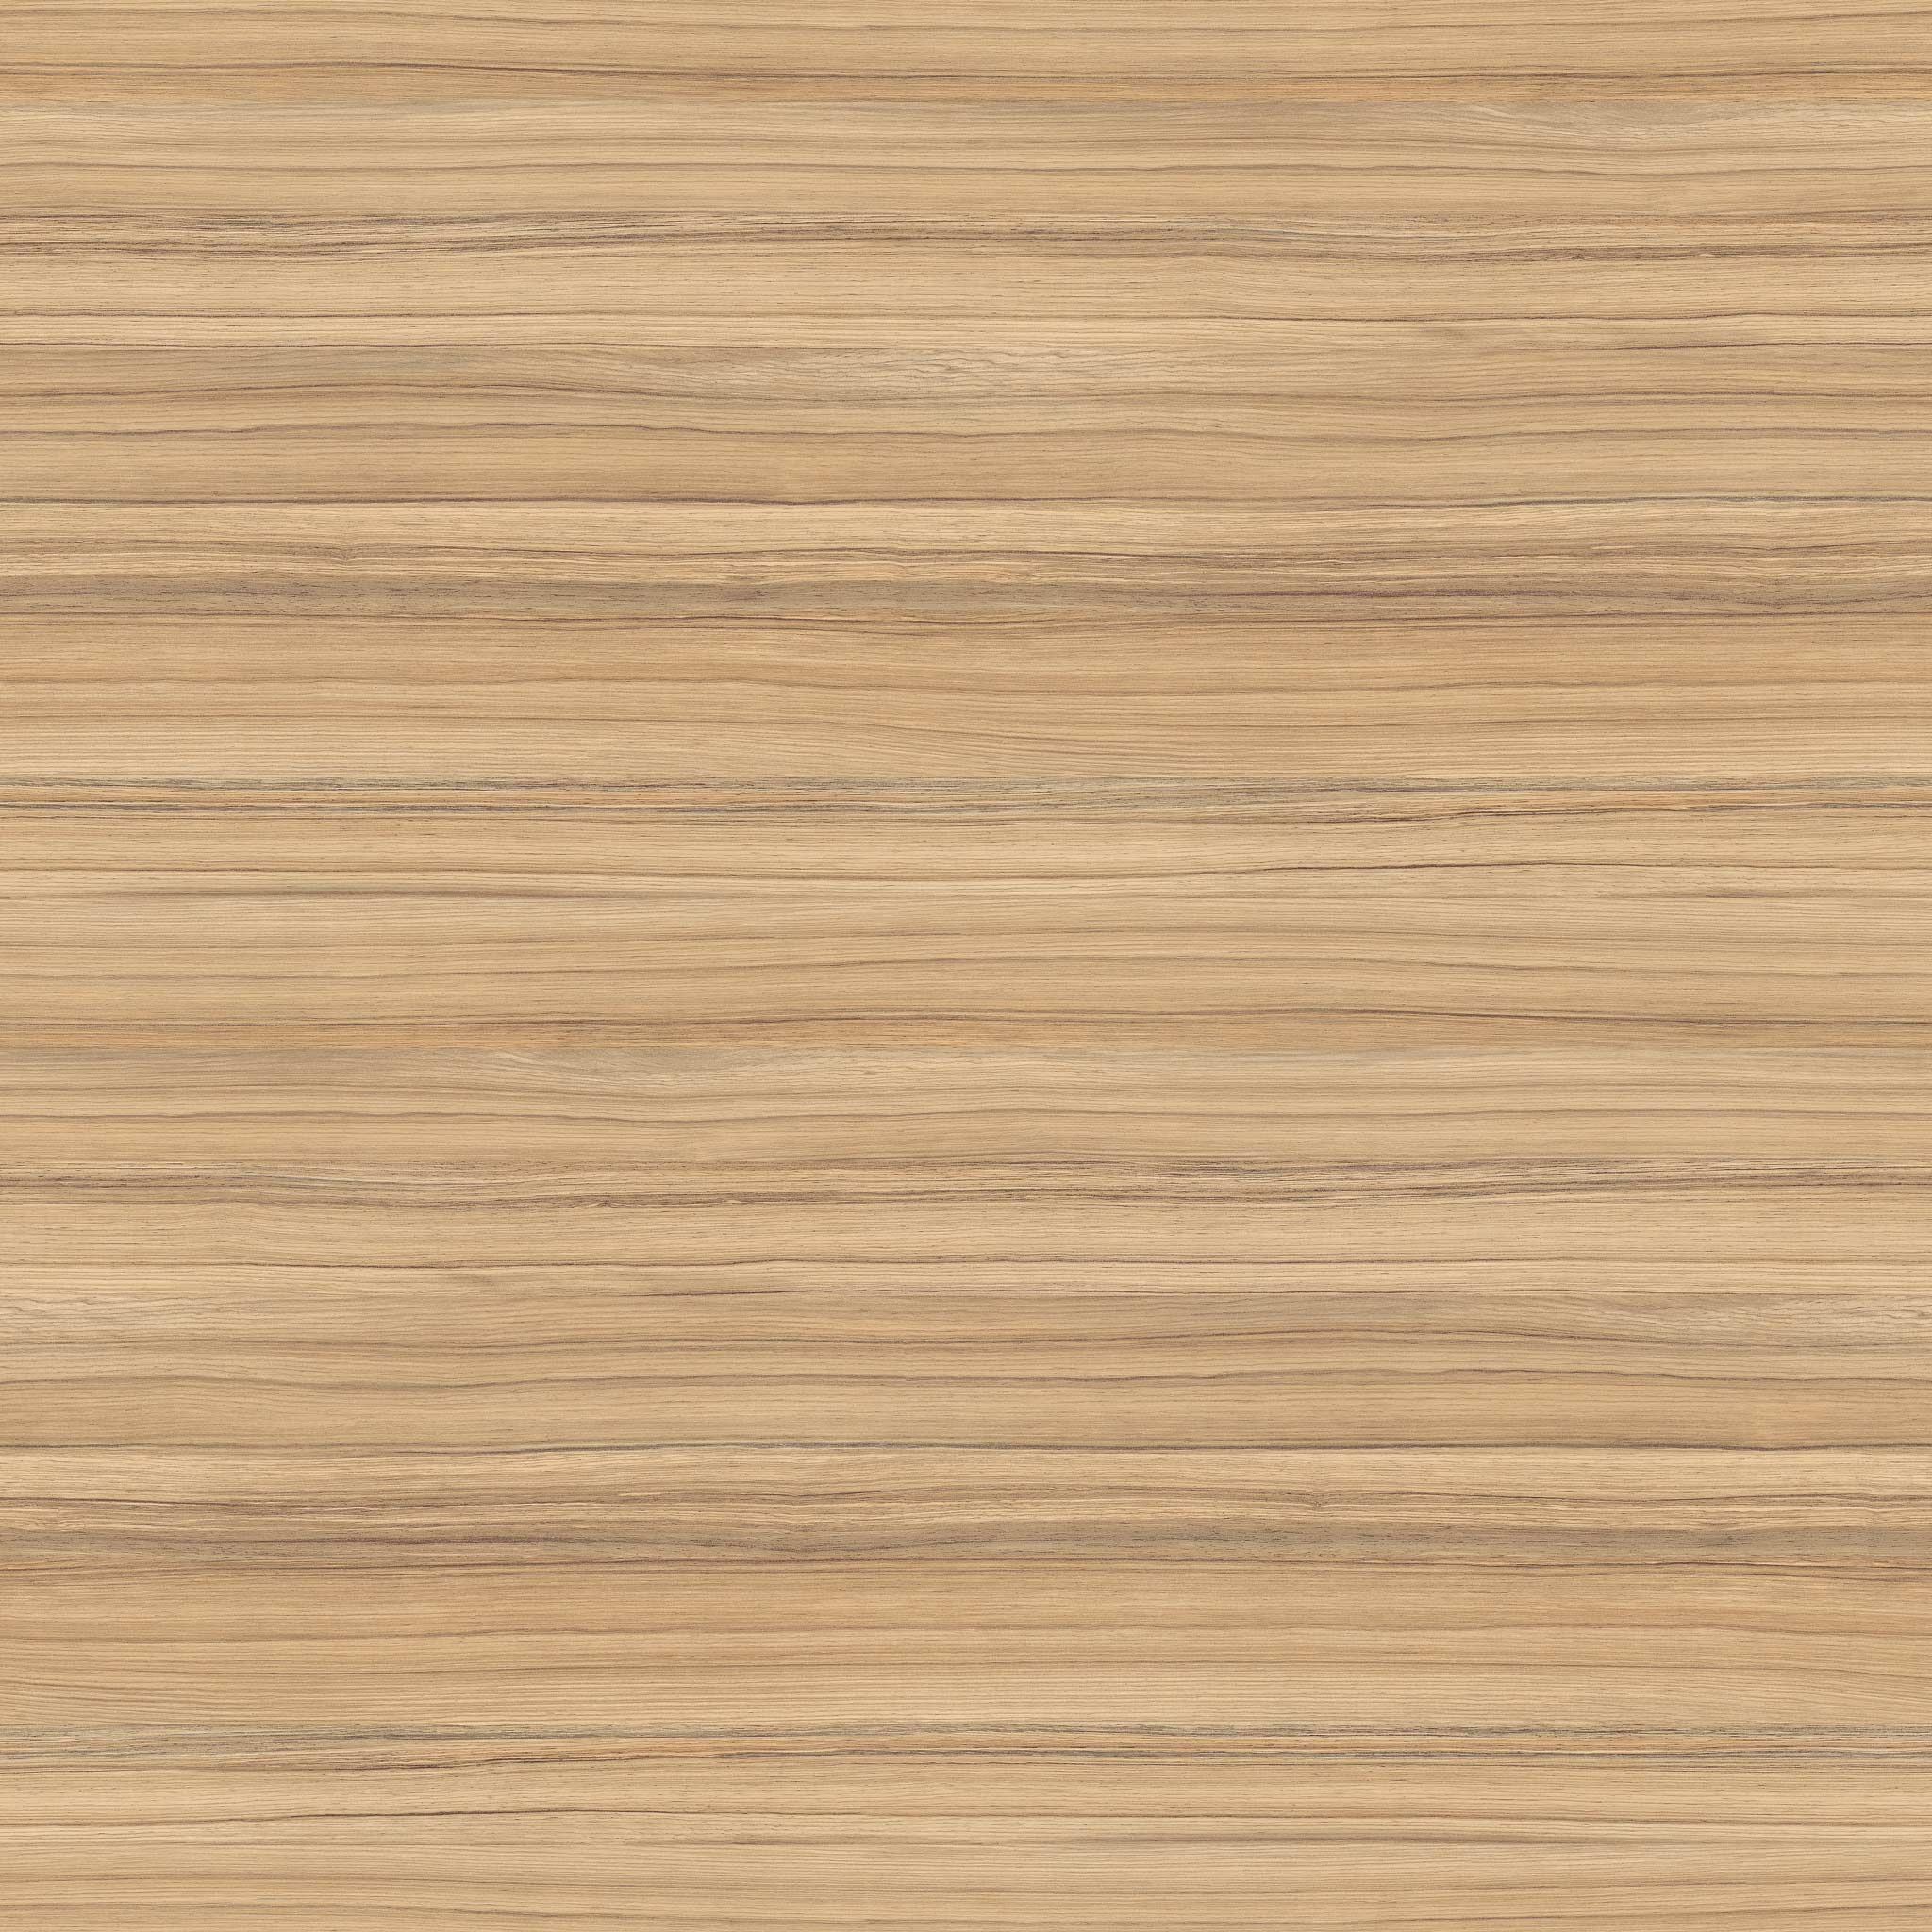 Egger Contemporary Coco Bolo kitchen worktop sample.